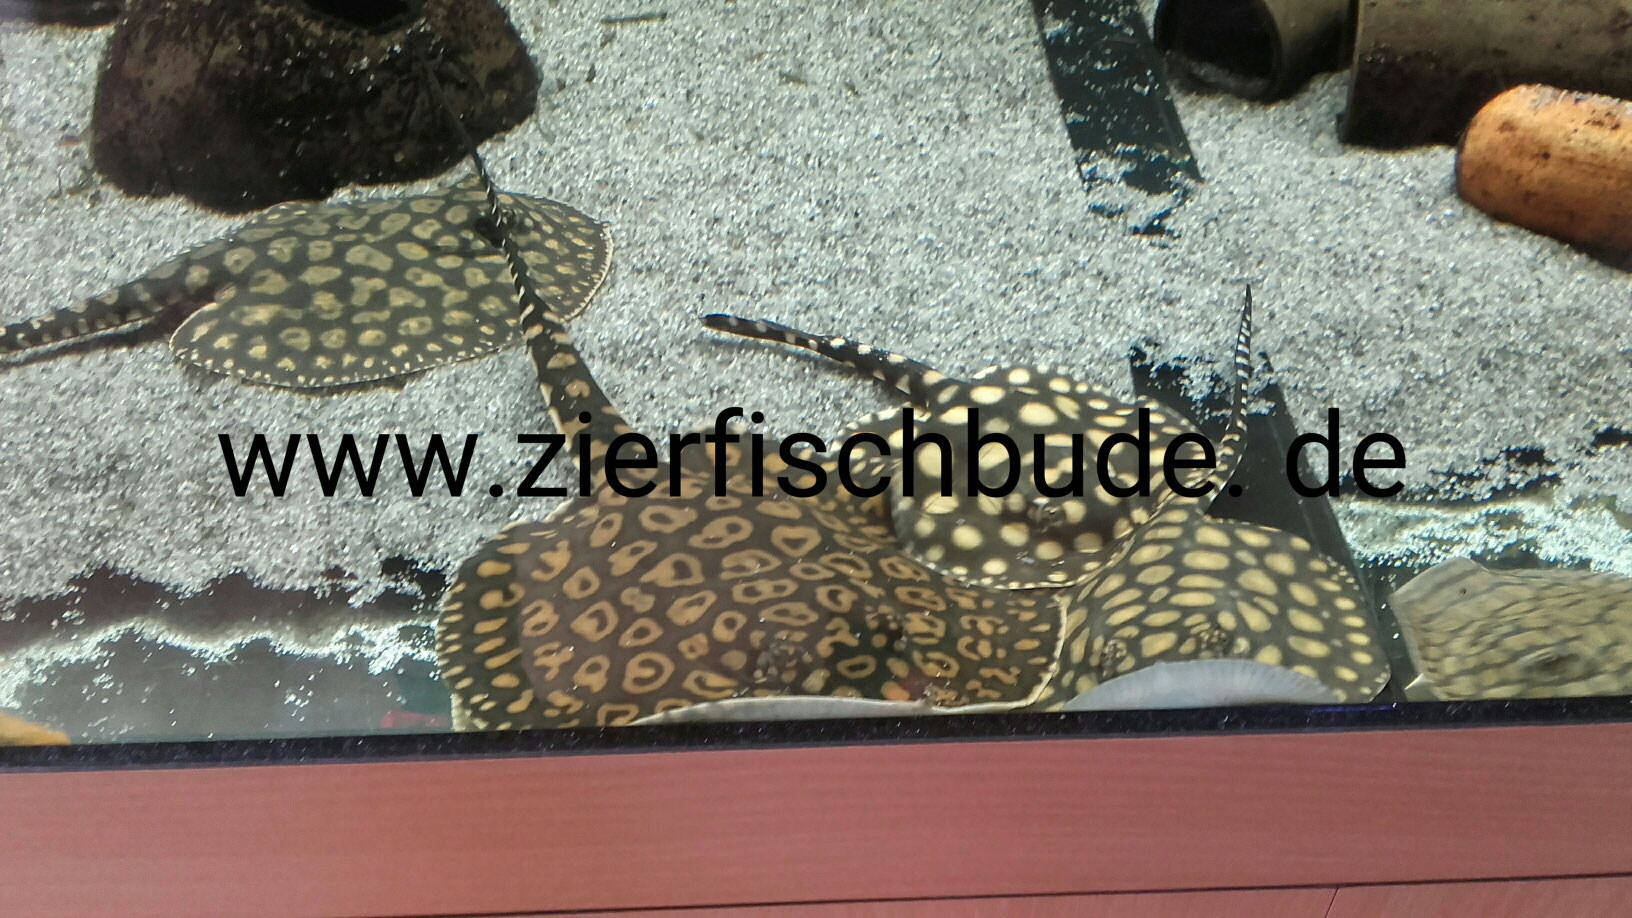 Rochen - Freshwater stingrays - zierfischbudes Jimdo-Page!